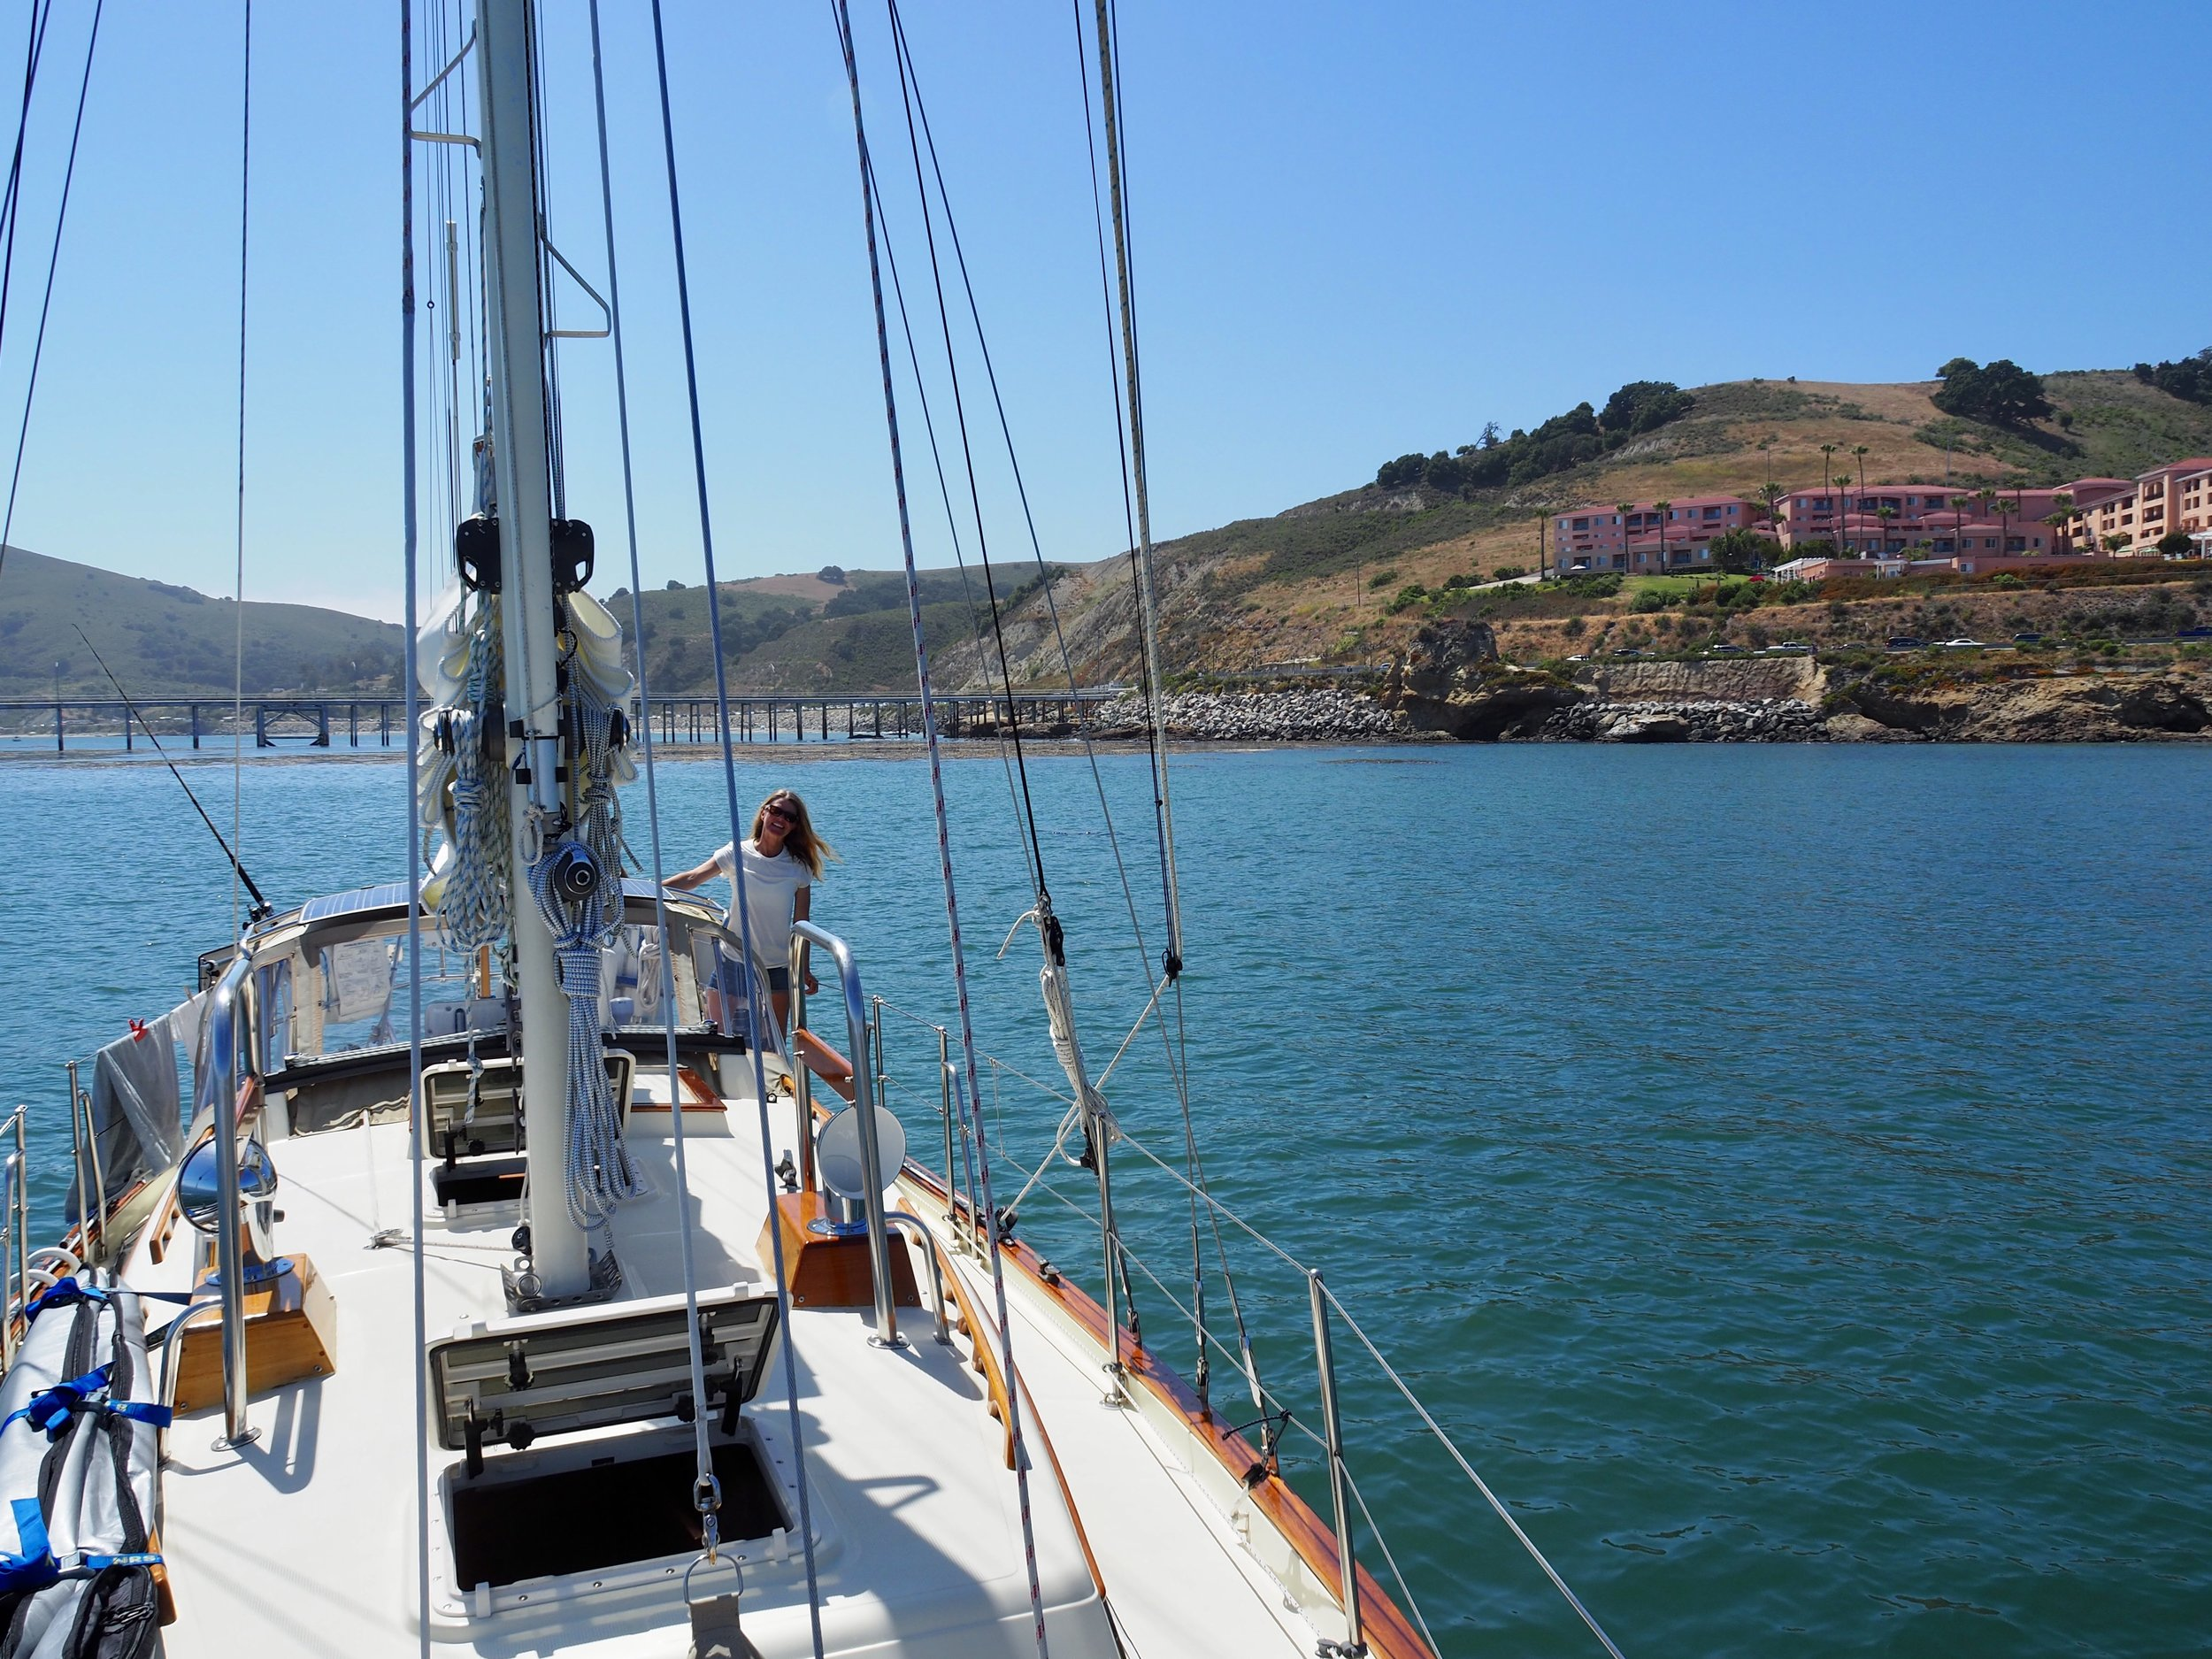 Anchored in Port San Luis, we were glad to have a little R&R